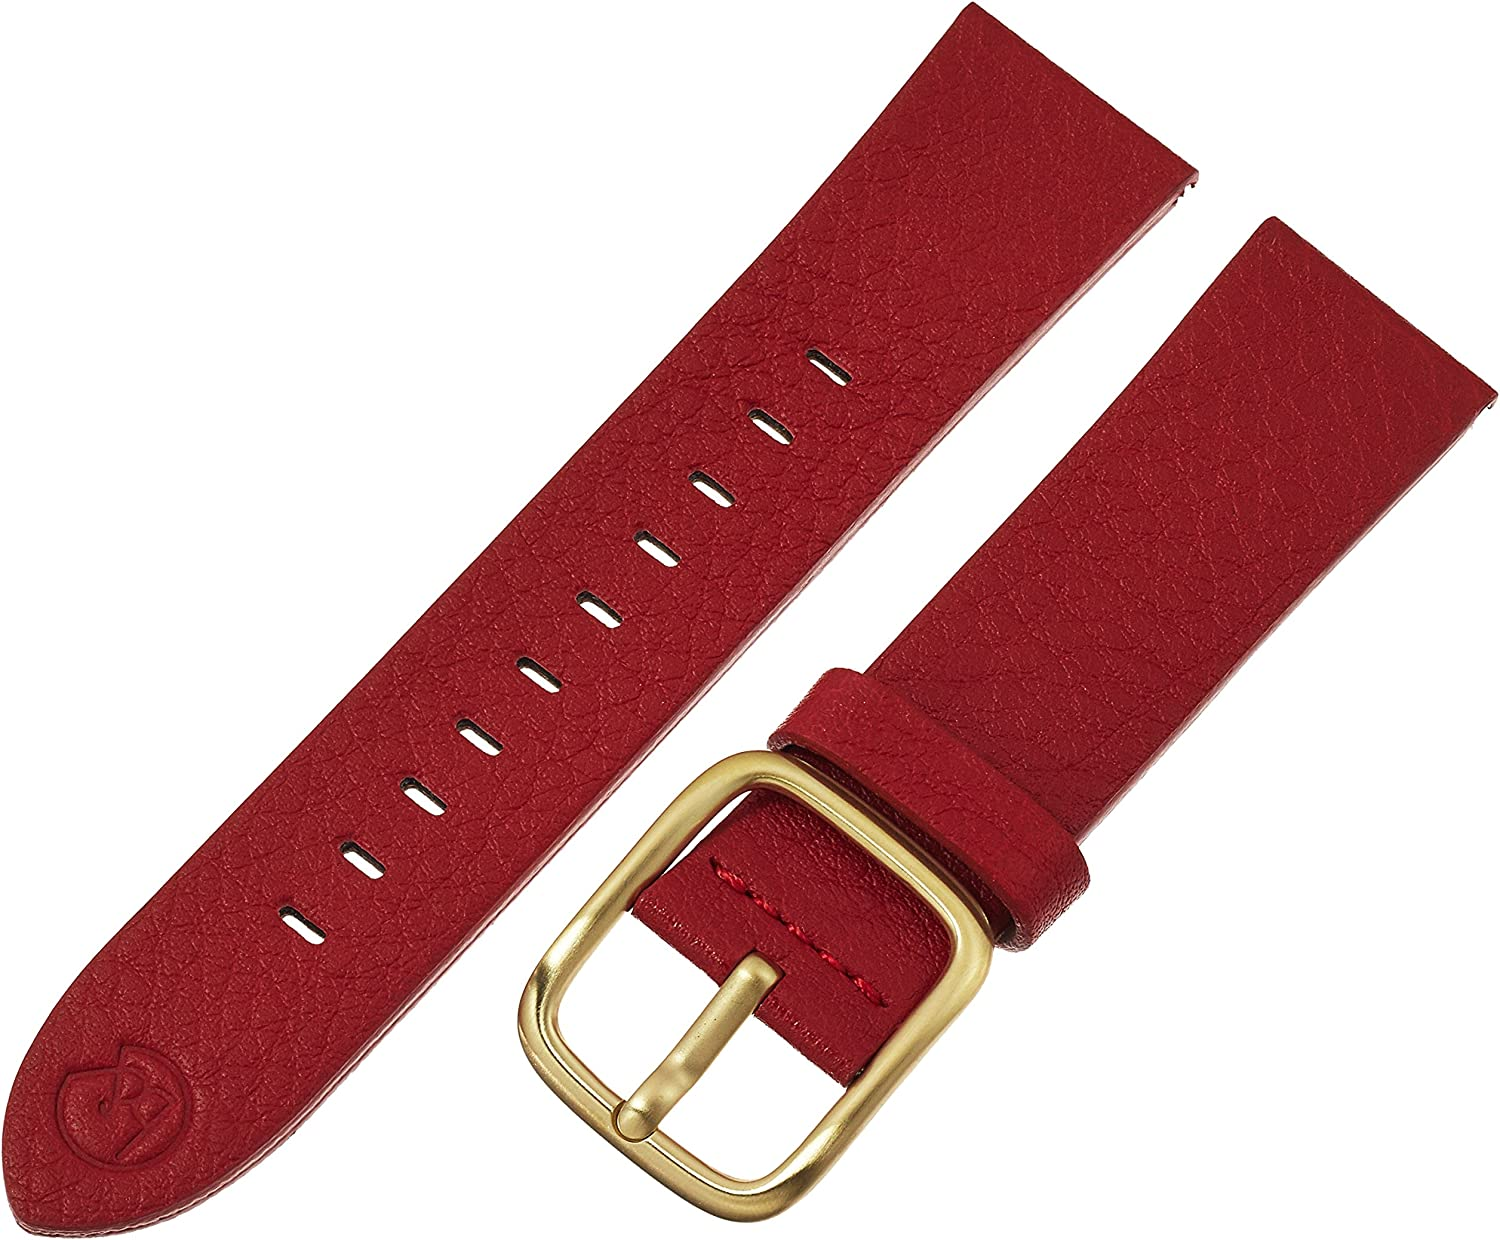 Elegant bnd by Hadley-Roma Raleigh Mall with Mode Red Watch Leather Genuine Ban 22mm